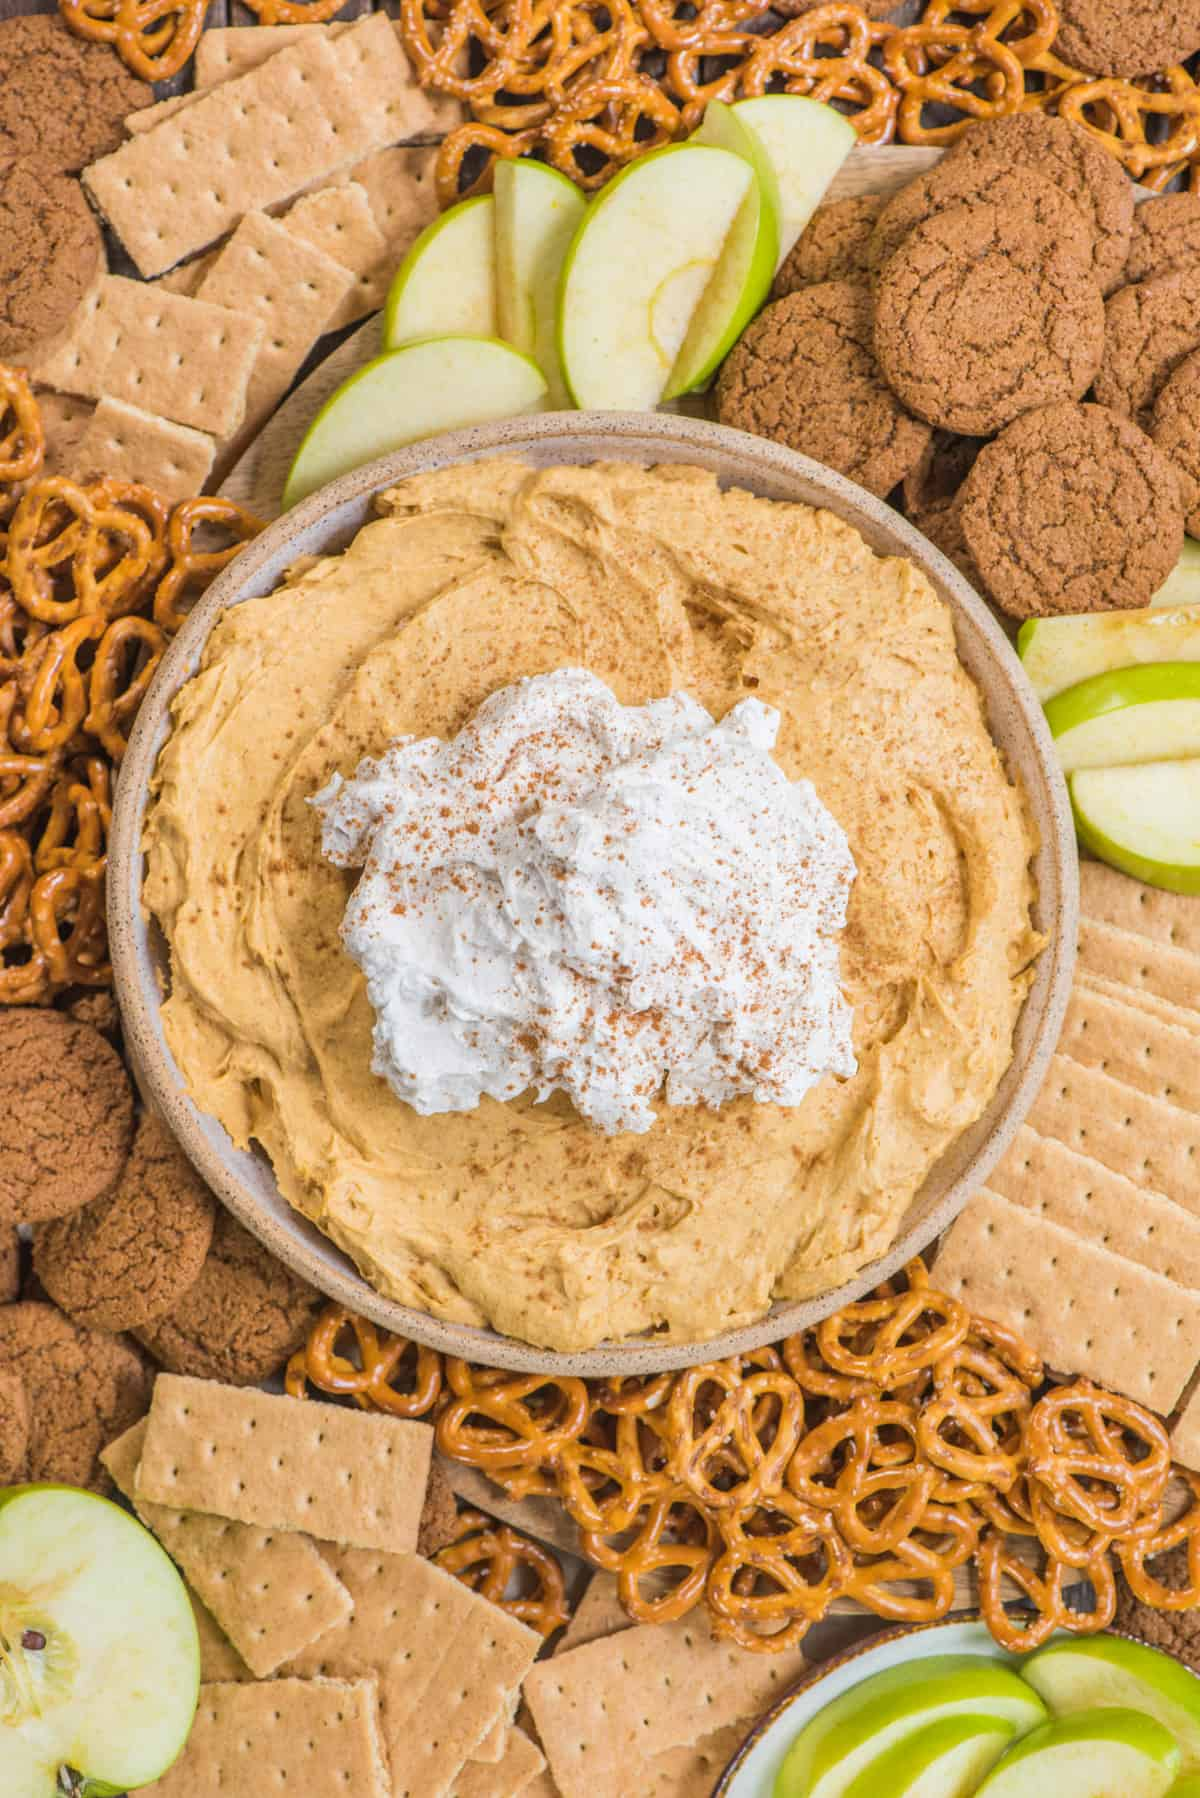 pumpkin dip with whipped cream topping in a bowl surrounded by piles of pretzels, gingersnaps, graham crackers and green apple slices